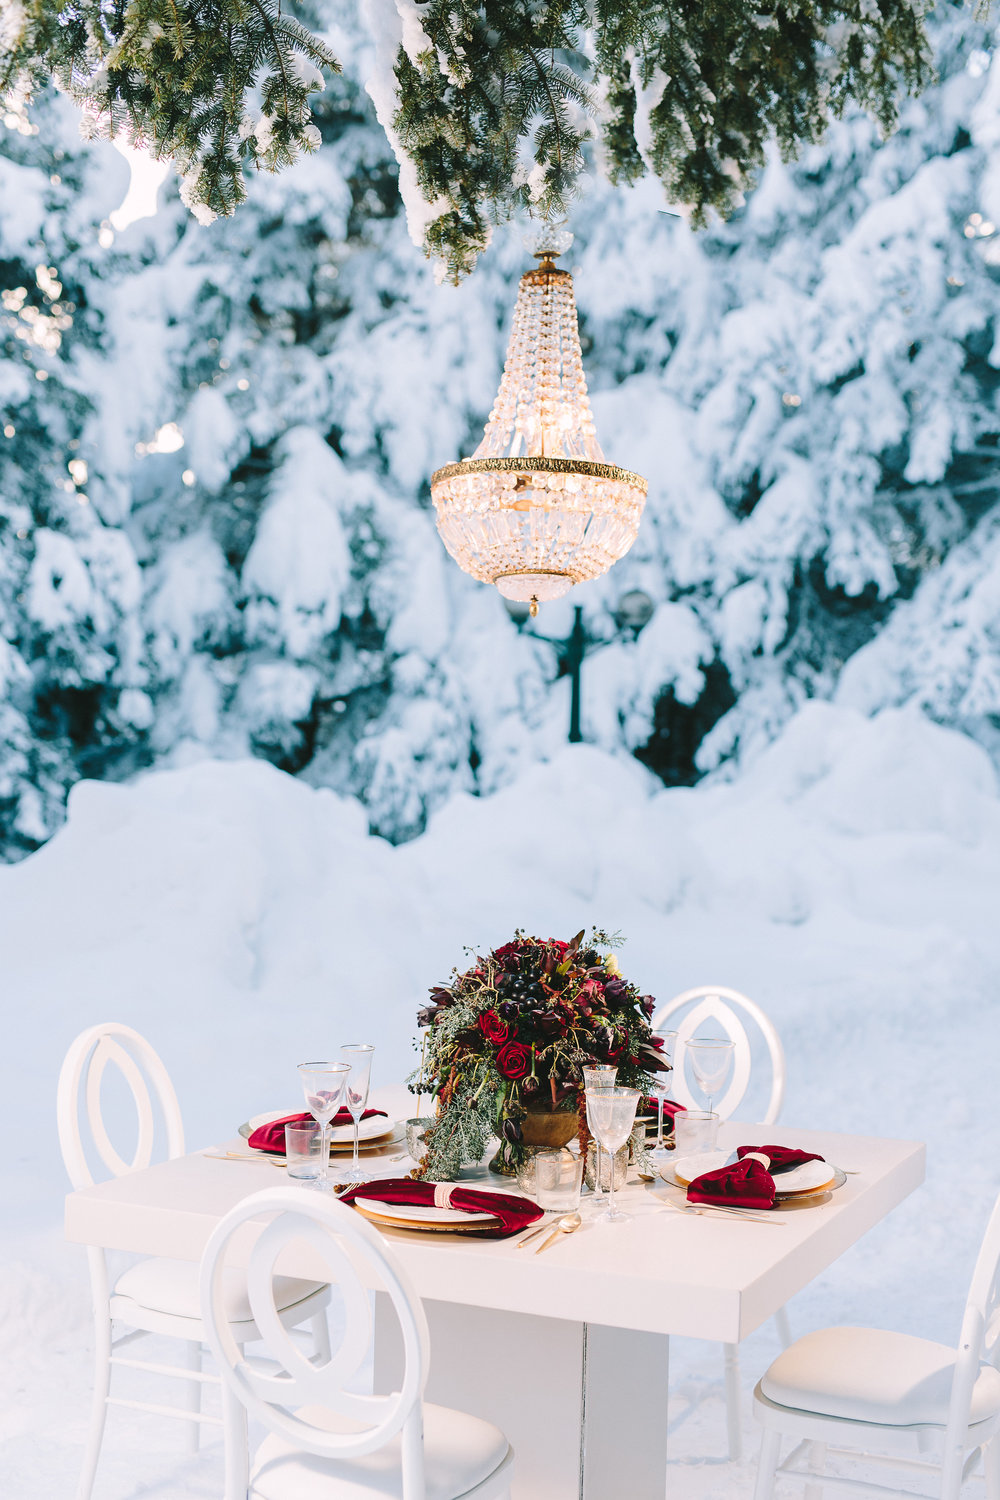 GRANDE MARSALA - WINTER WEDDING